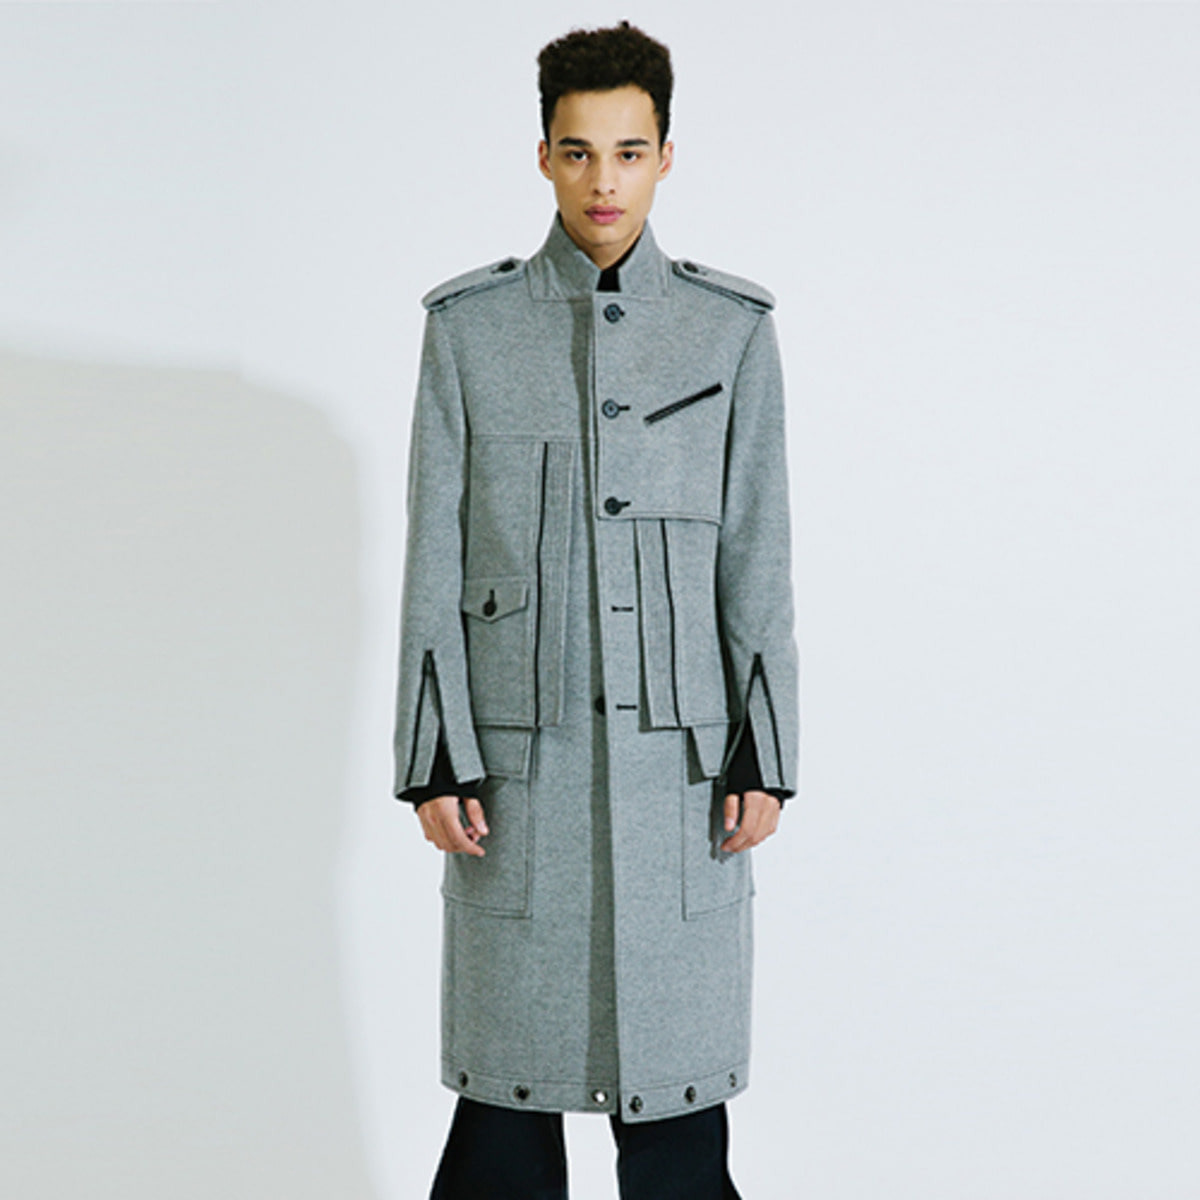 GREY PLACKET WOOL CASHMERE COAT